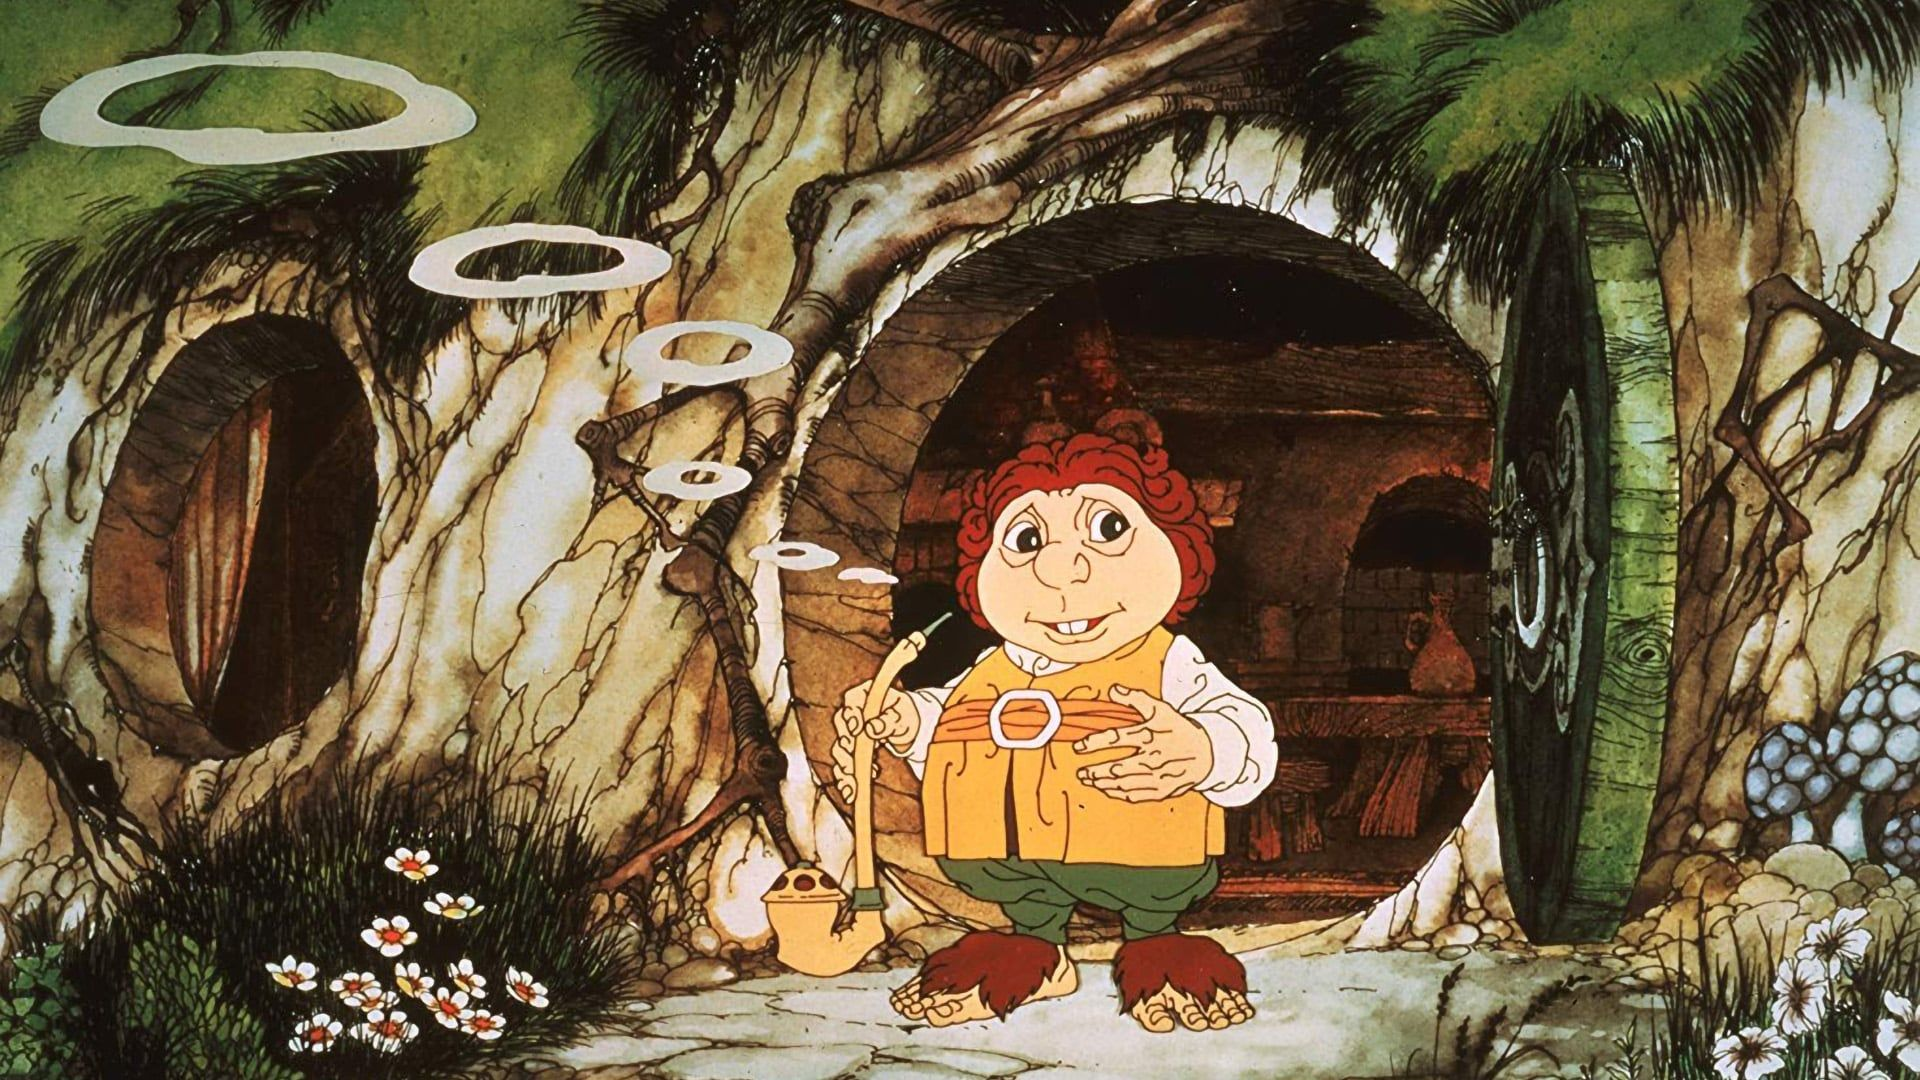 The Hobbit 1977 Where To Watch It Streaming Online Available In The Uk Reelgood